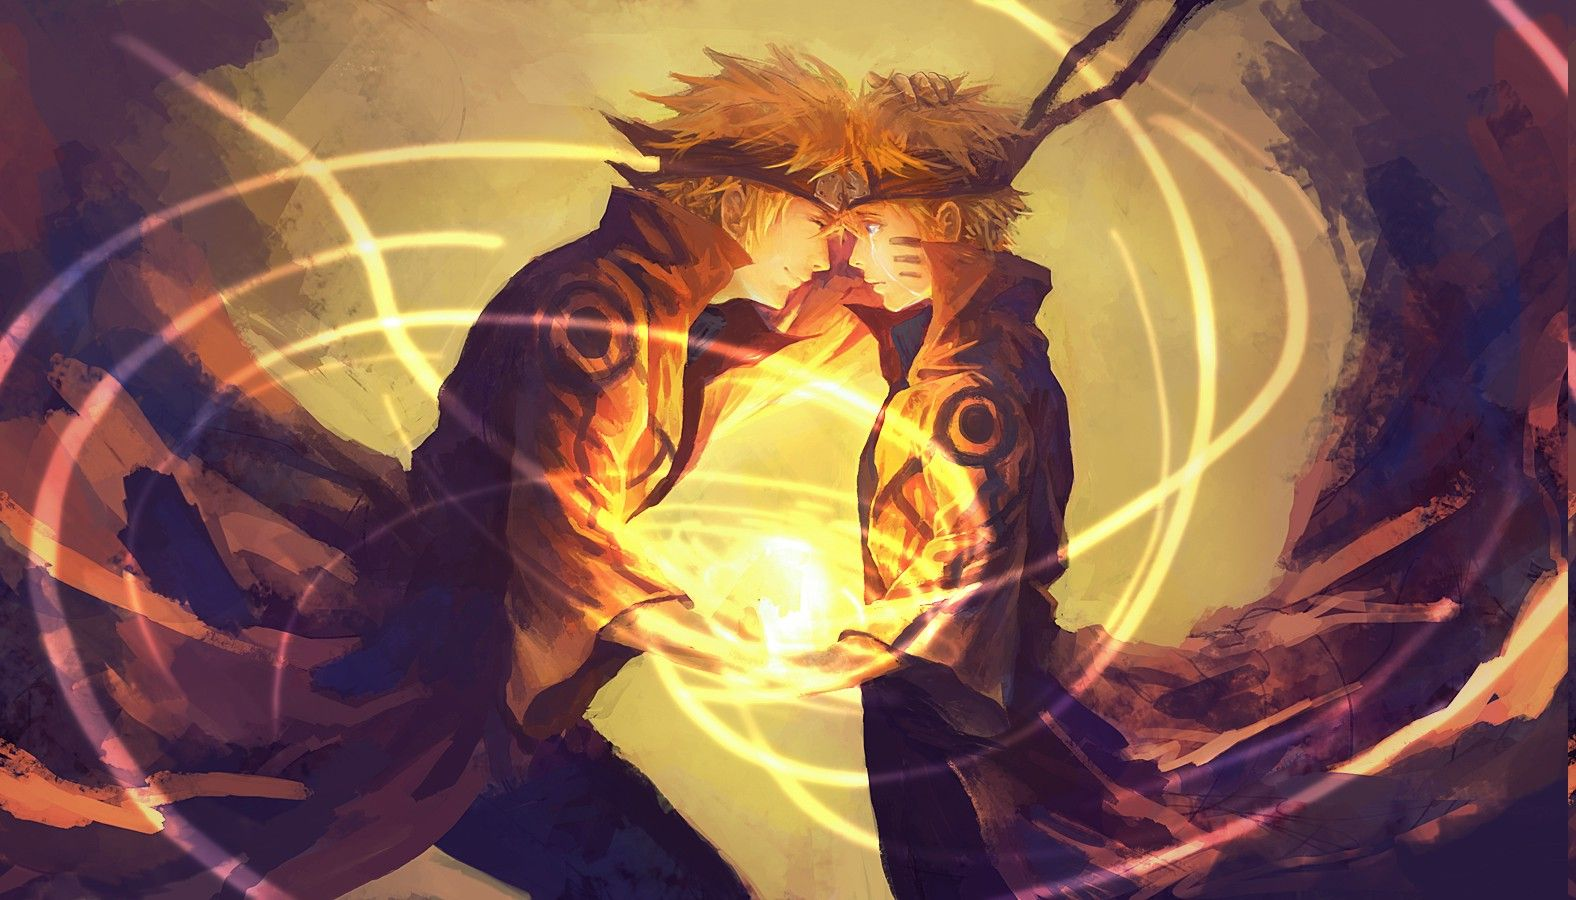 Naruto Minato Wallpaper Hd Resolution Is Cool Wallpapers ...